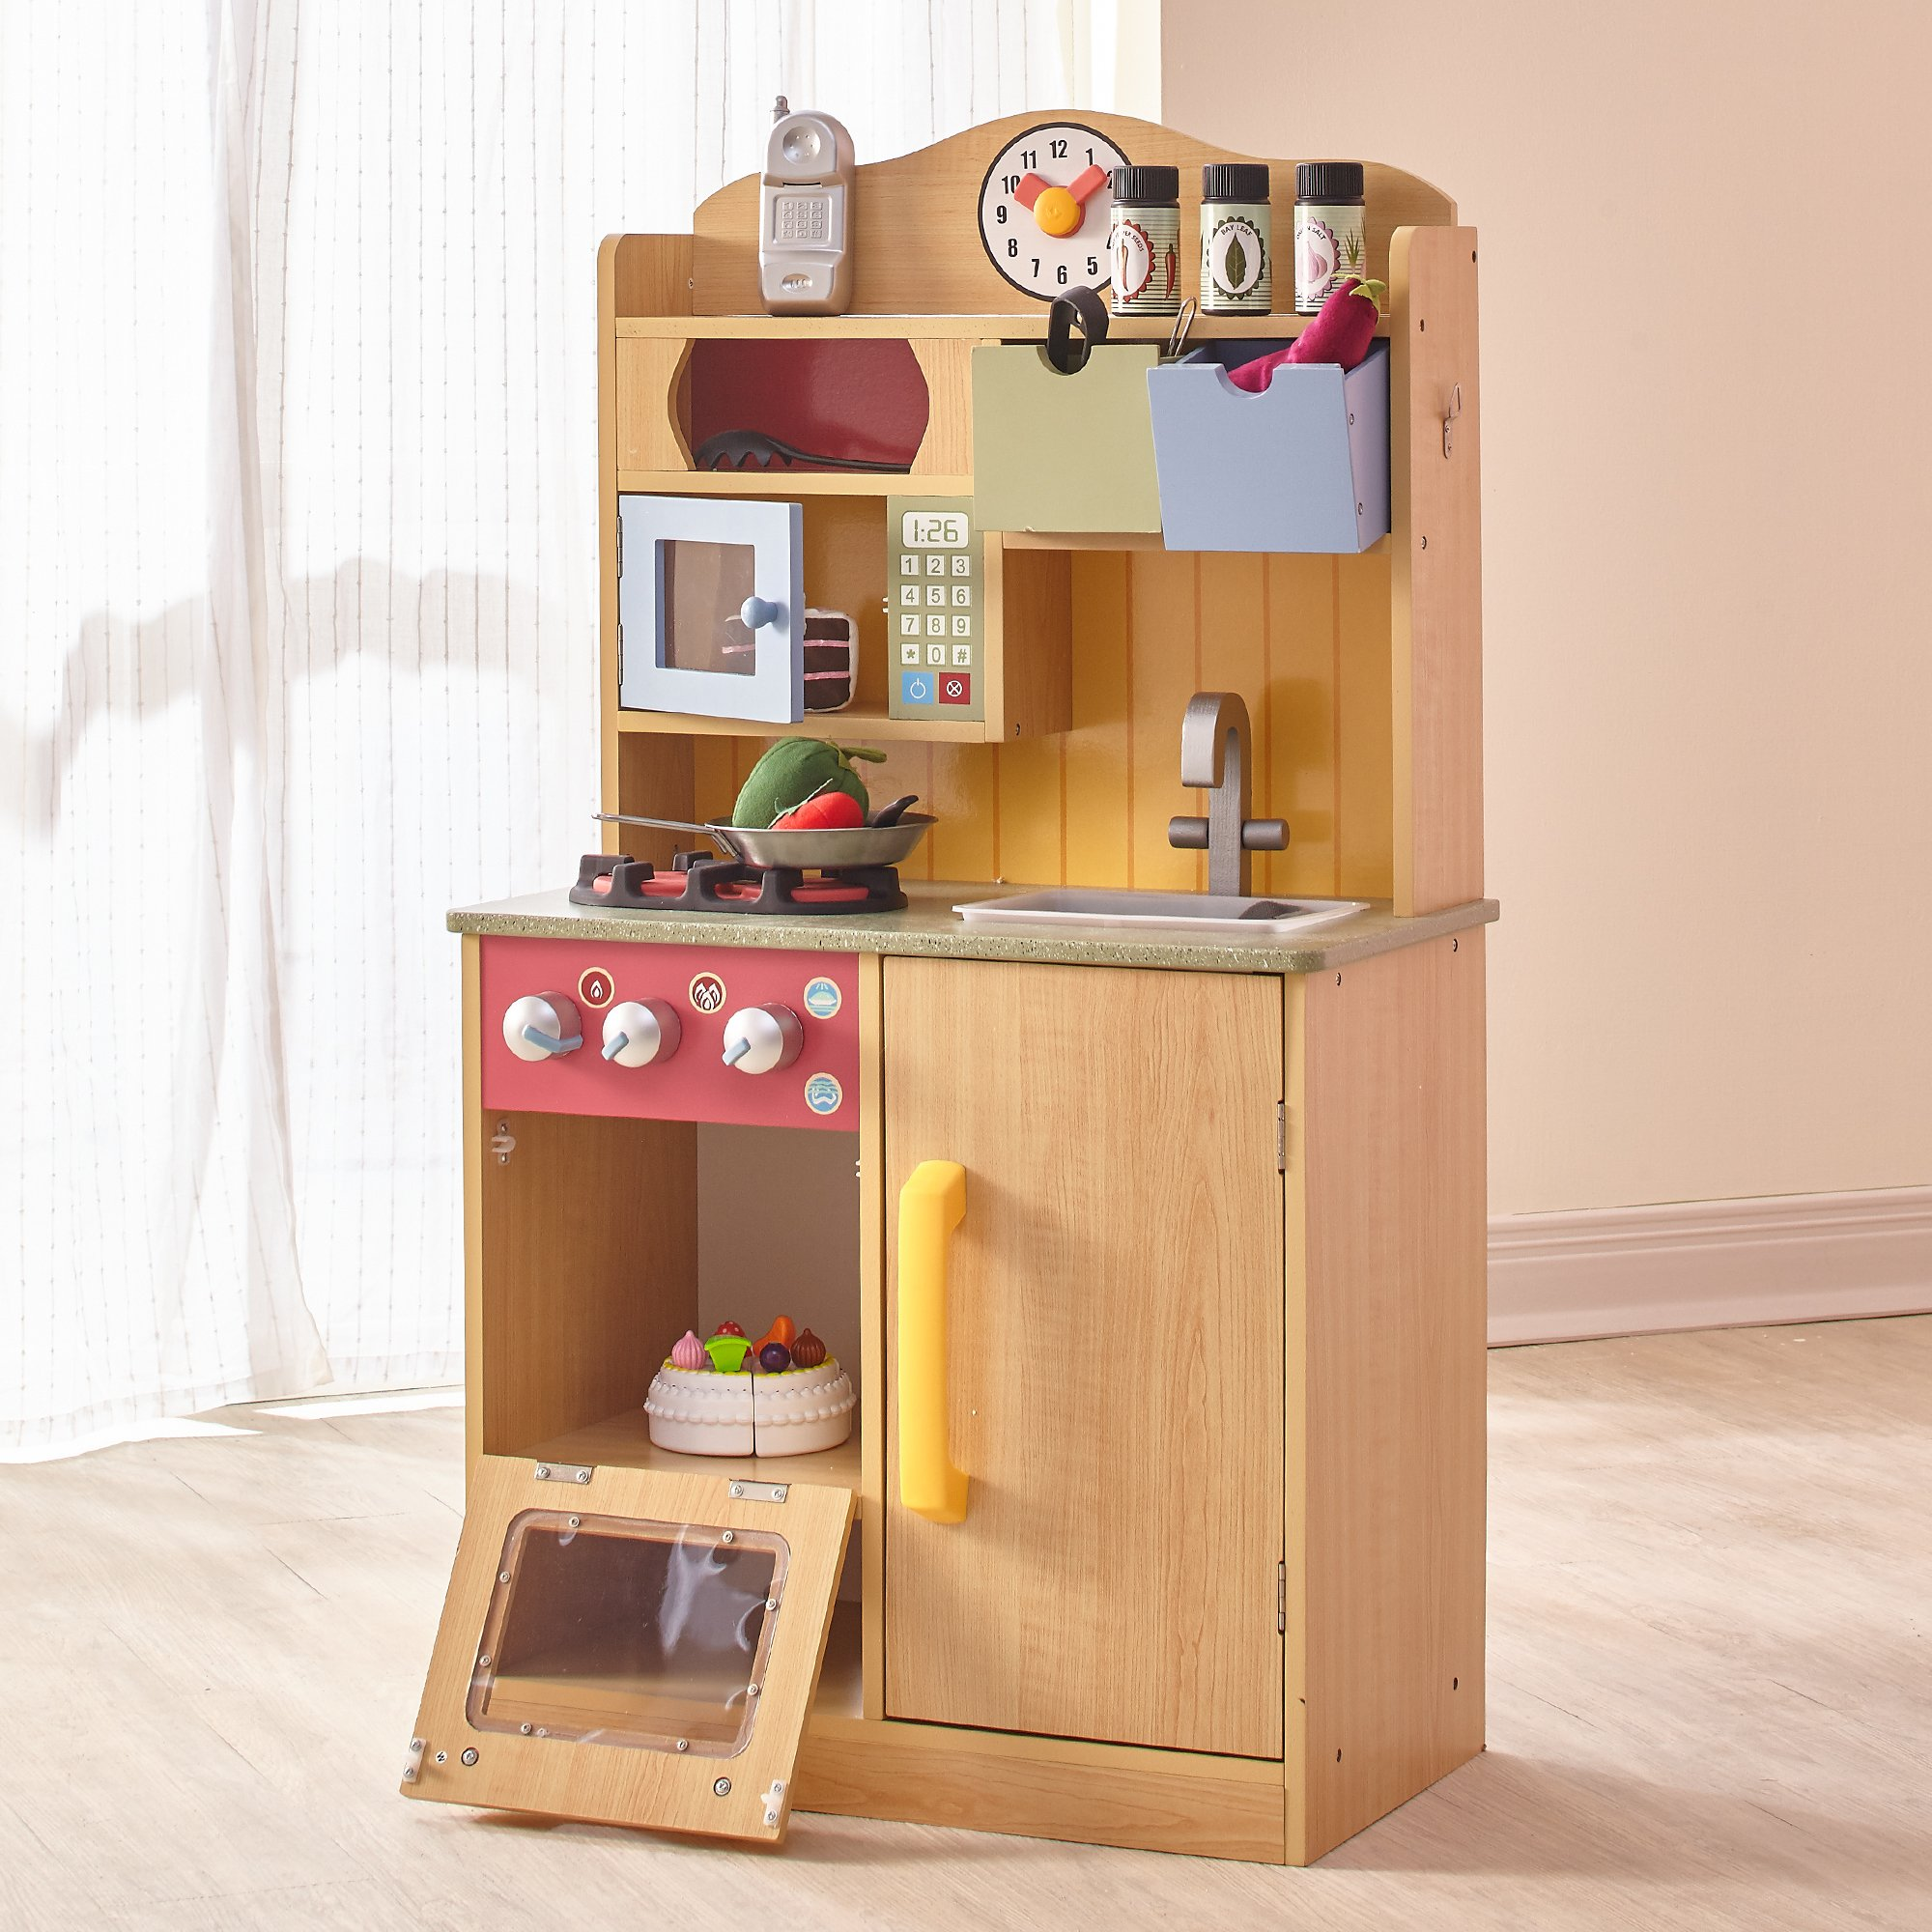 Teamson Kids - Little Chef Florence Classic Kids Play Kitchen | Toddler Pretend Play Set with Accessories - Wood Grain by Teamson Kids (Image #5)